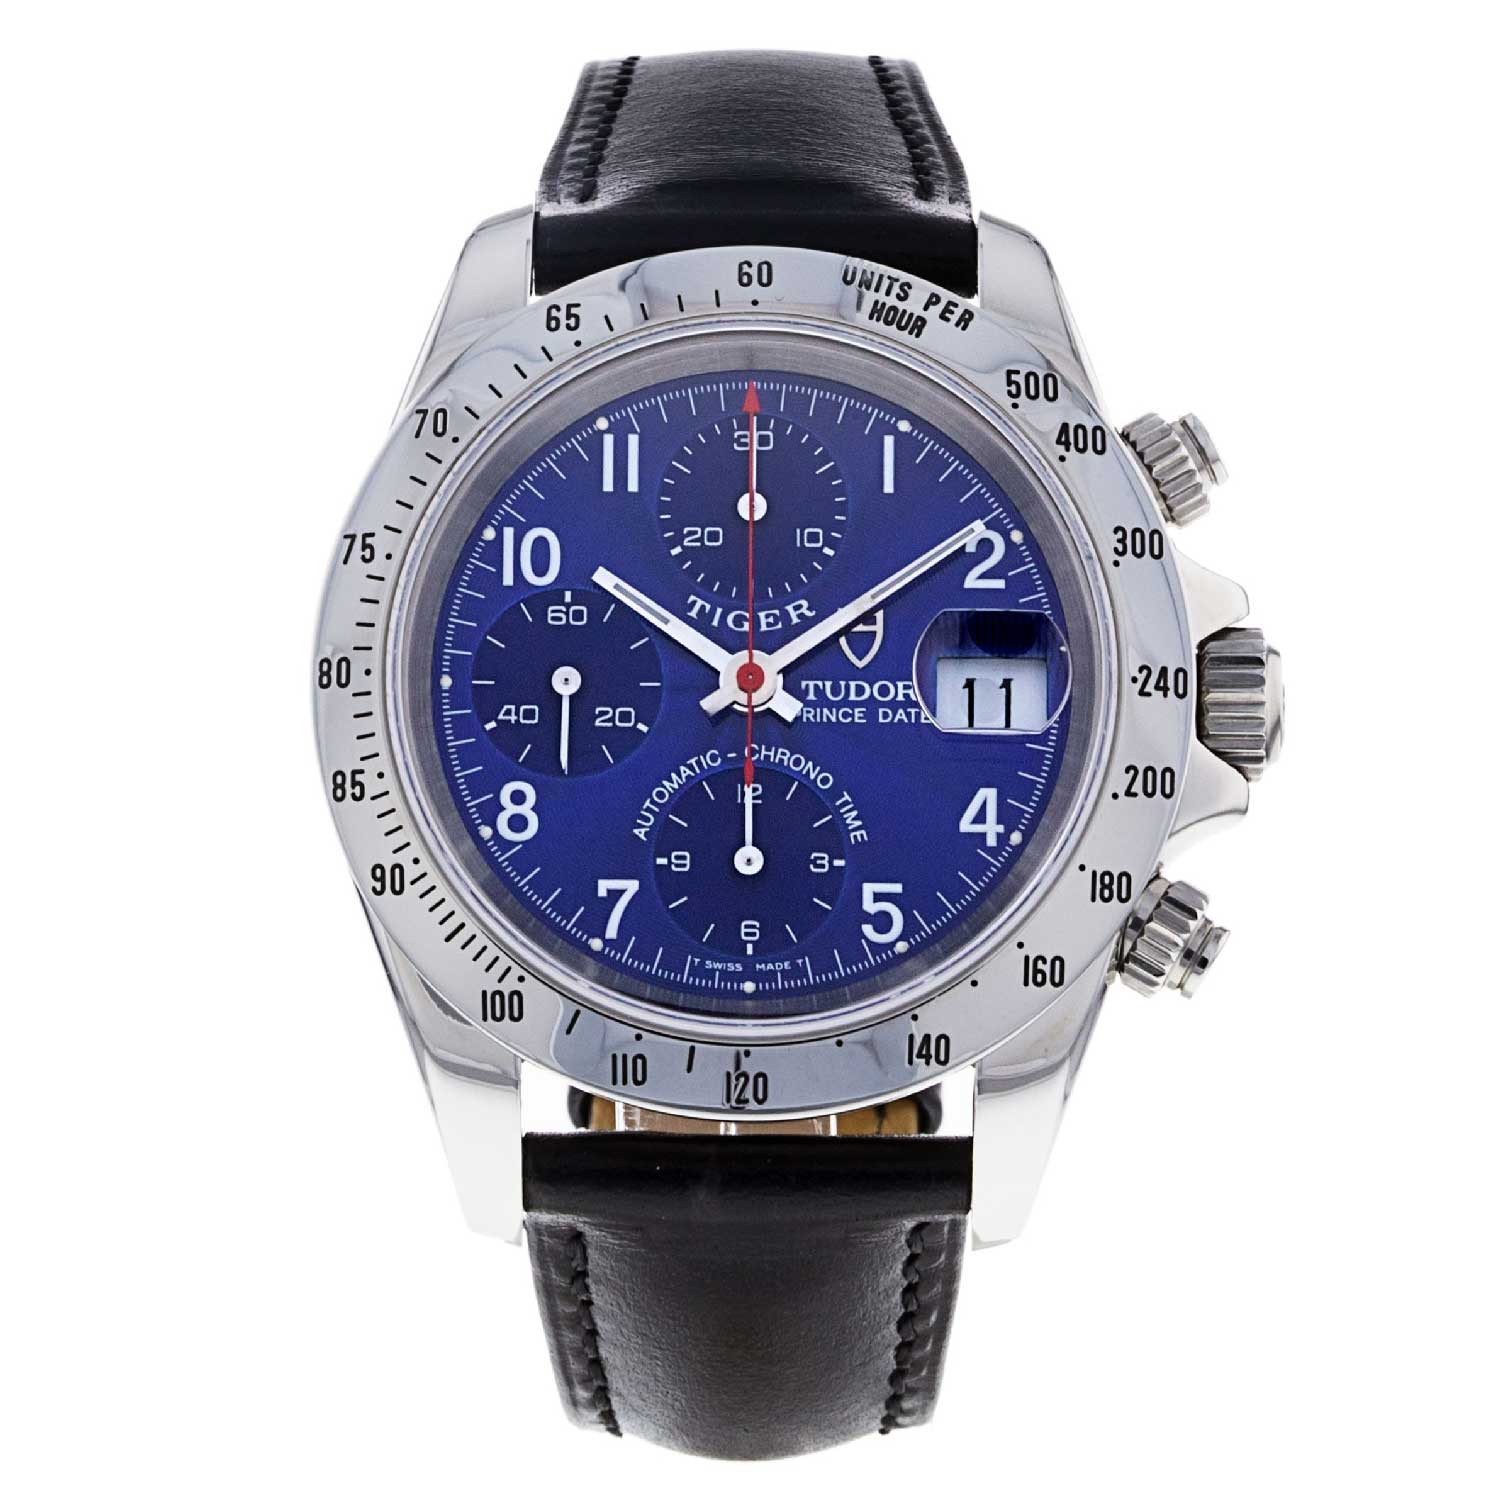 The reference 79280P, available in our shop, has a rich blue dial that has painted Arabic hour markers and is double signed TIGER, a reference to Tudor ambassador Tiger Woods.